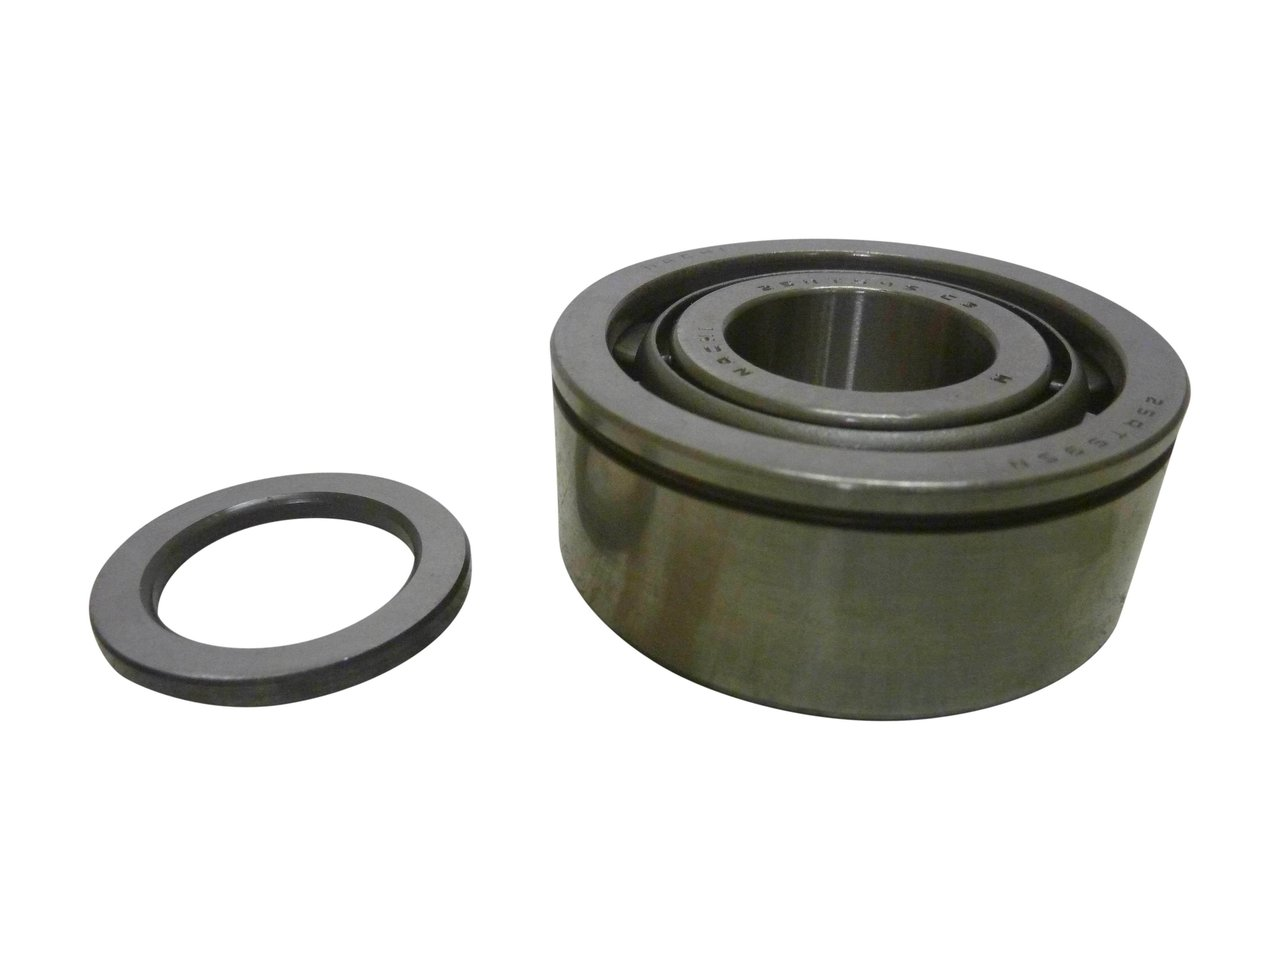 gearbox cluster shaft front bearing suitable for hilux   landcruiser 2017 Toyota Hilux toyota hilux kun26 owners manual